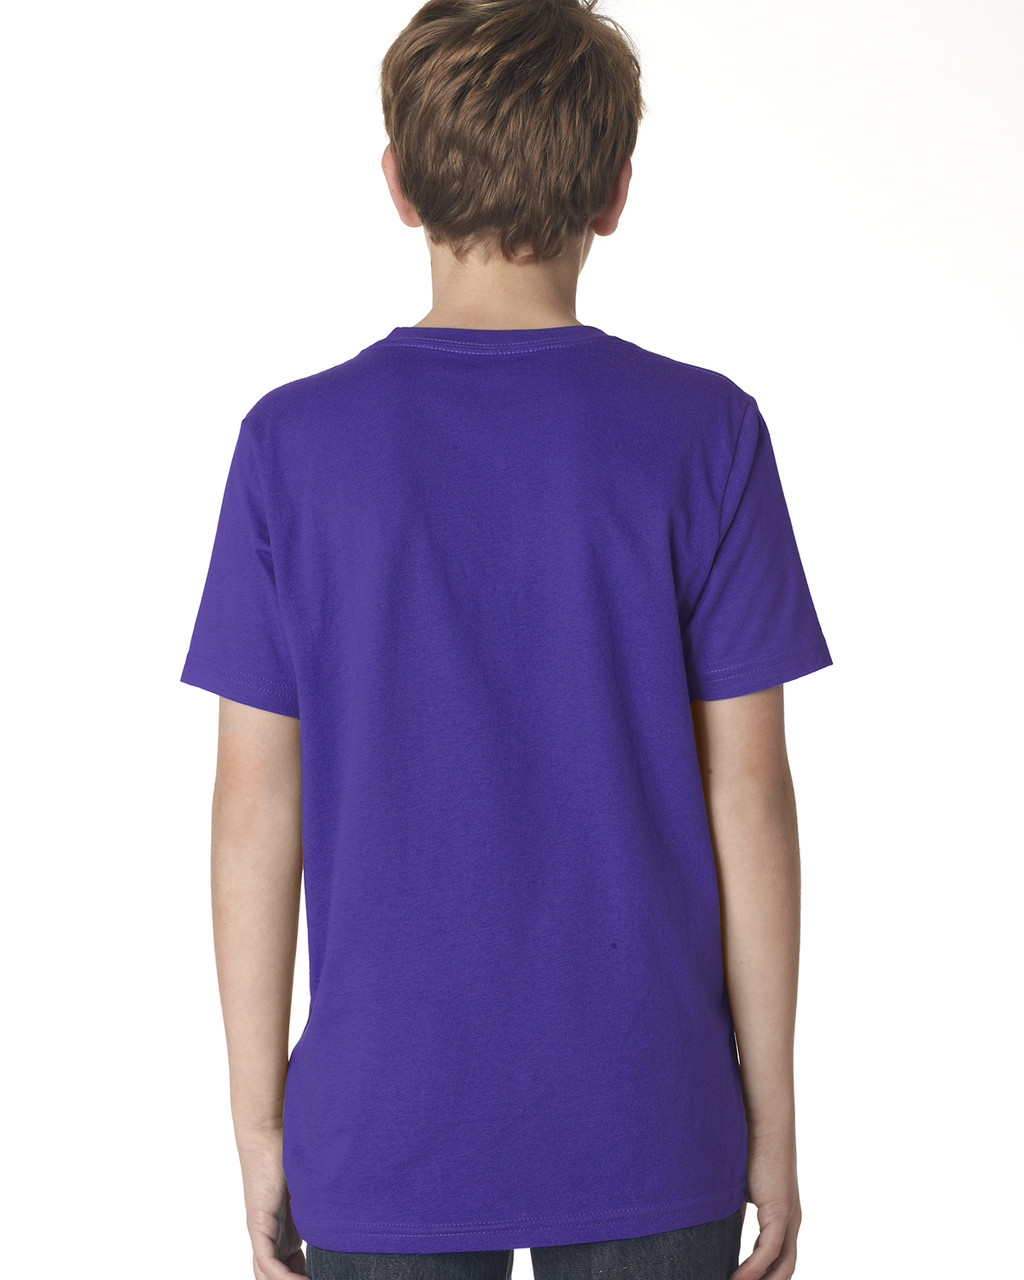 Purple Rush, back 3310 Next Level Boys' Premium Crew Tee | Blankclothing.ca